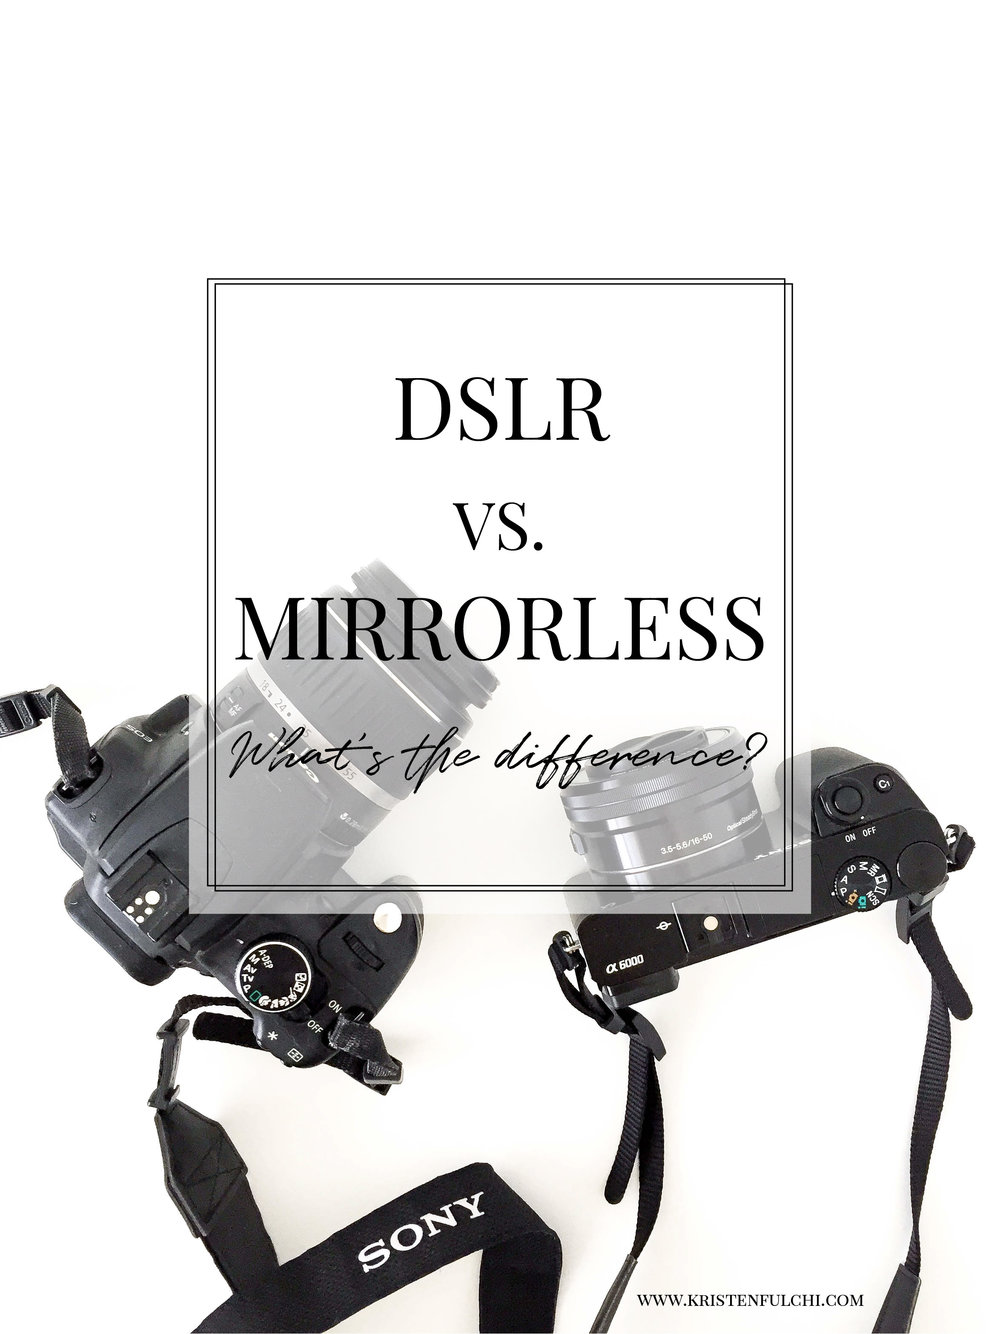 Whats-the-difference-between-a-dslr-camera-and-a-mirrorless-camera-pinterest-01.jpg